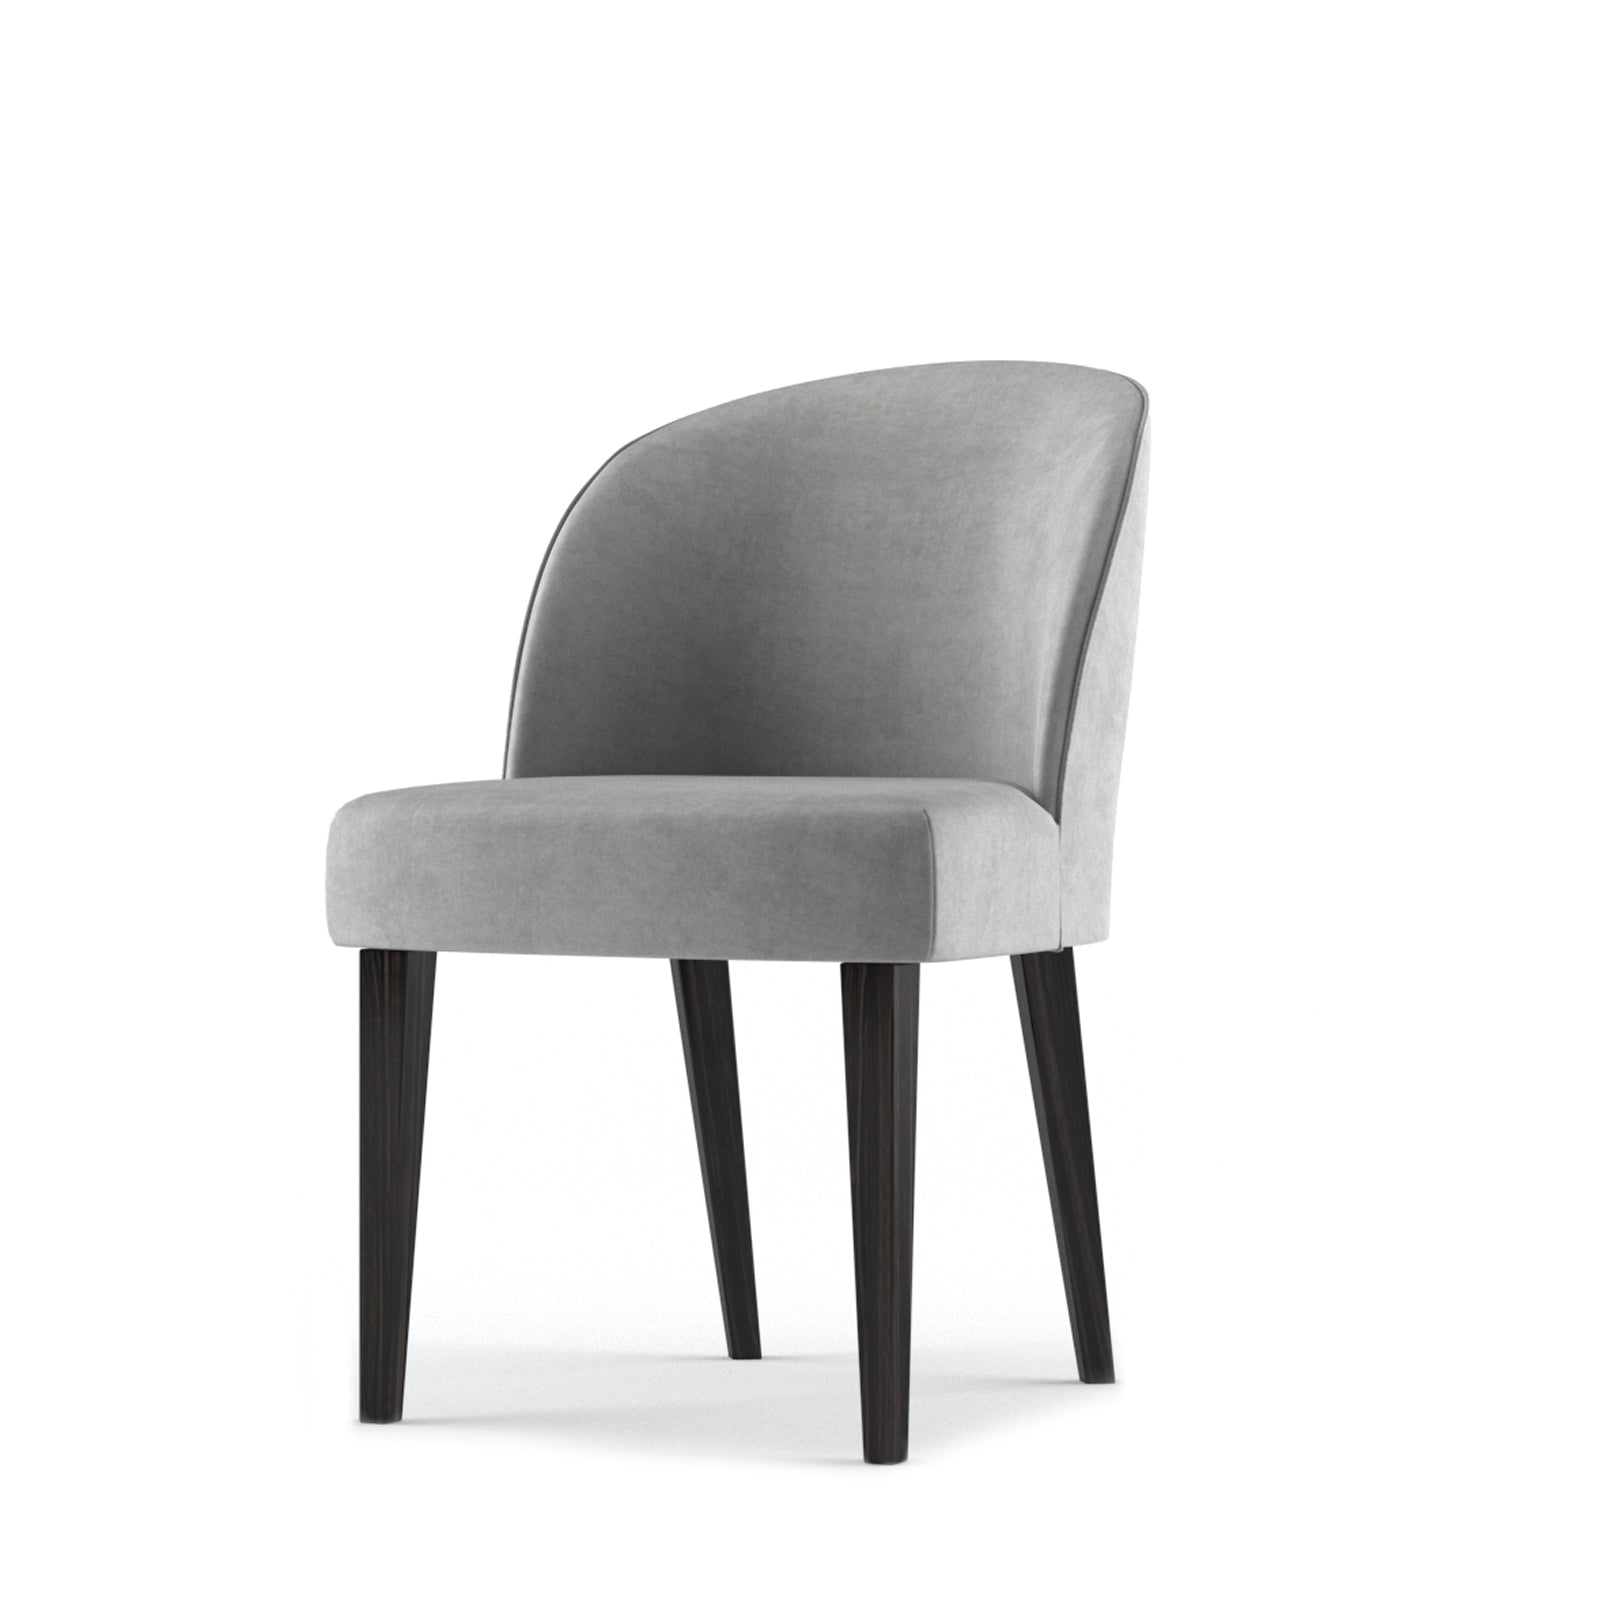 BOSELY DINING CHAIR